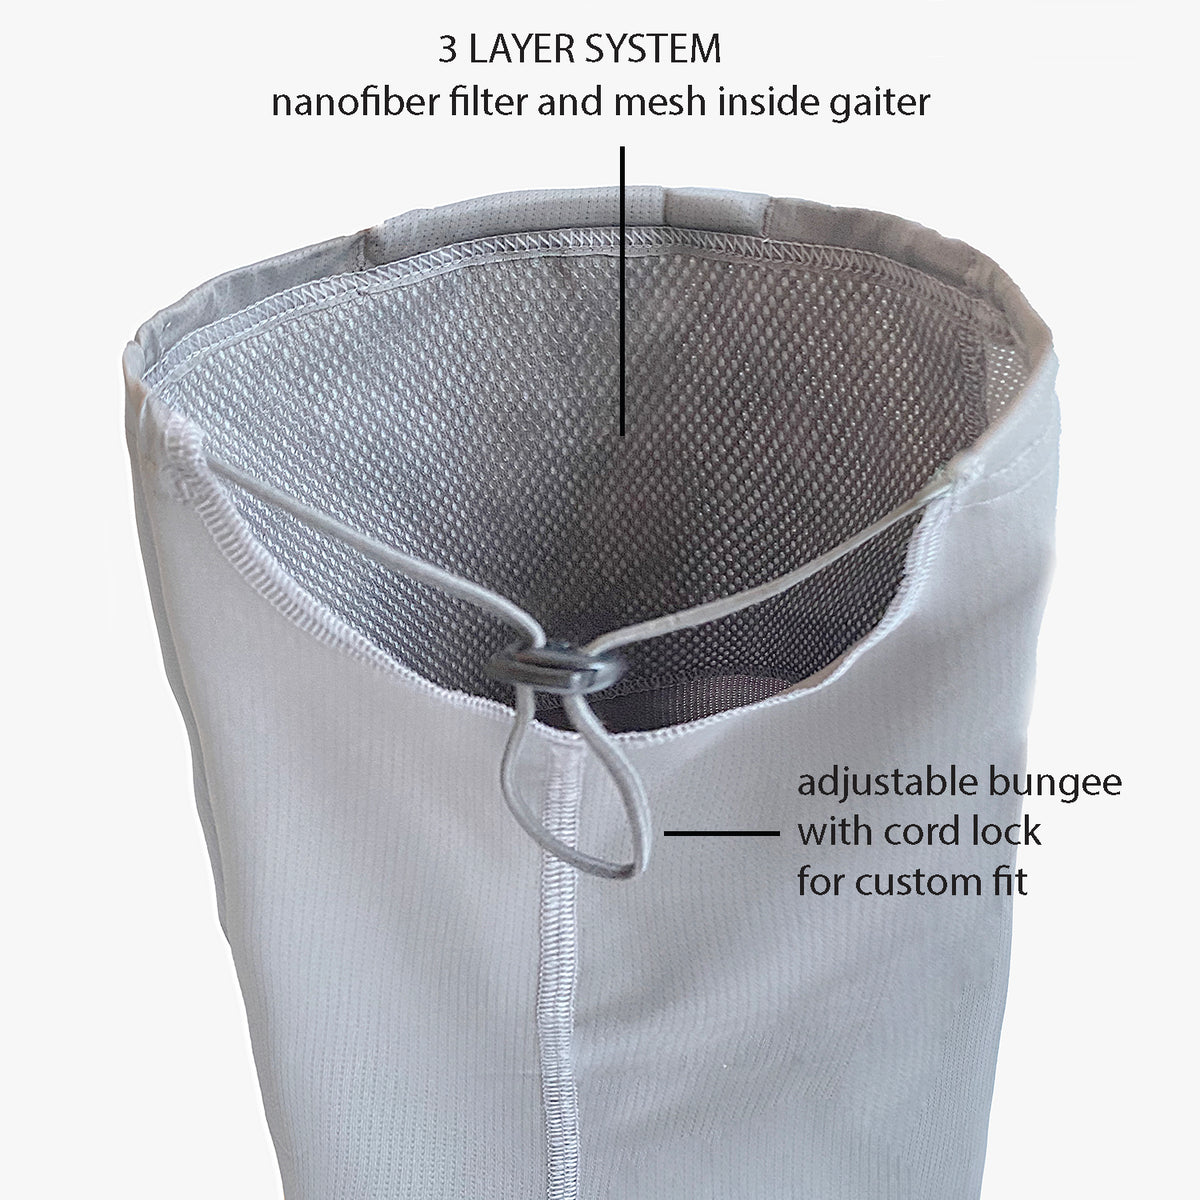 Puretec cool® Antimicrobial Neck Gaiter with Nanofiber Filter (Gray Flannel/Connecticut)